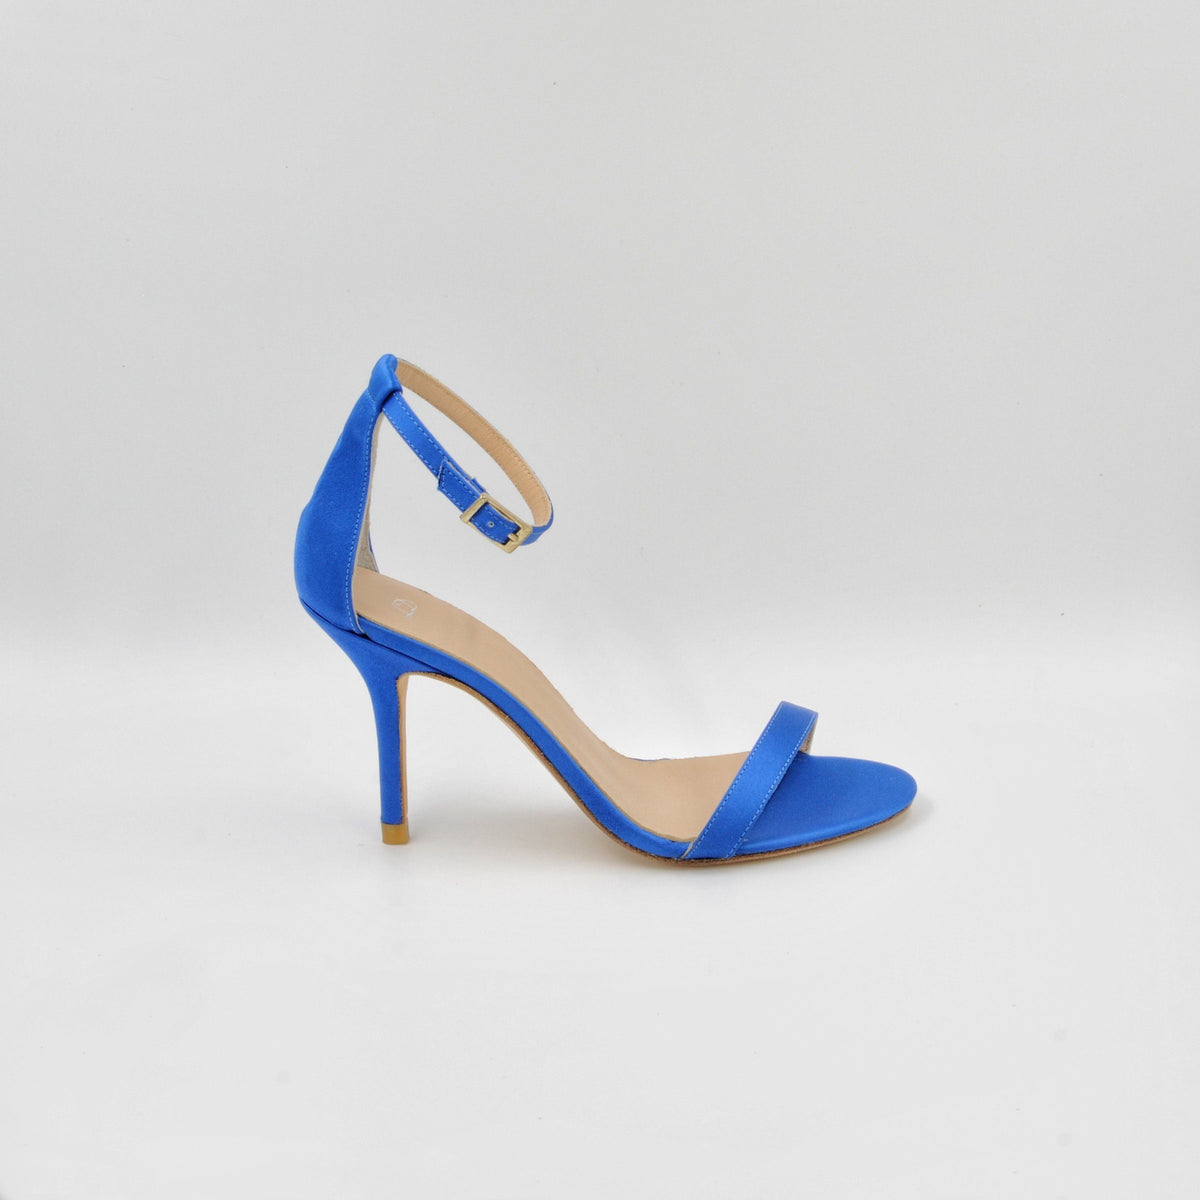 Lola Domecq Alejandra In Blue Hand made satin sandal